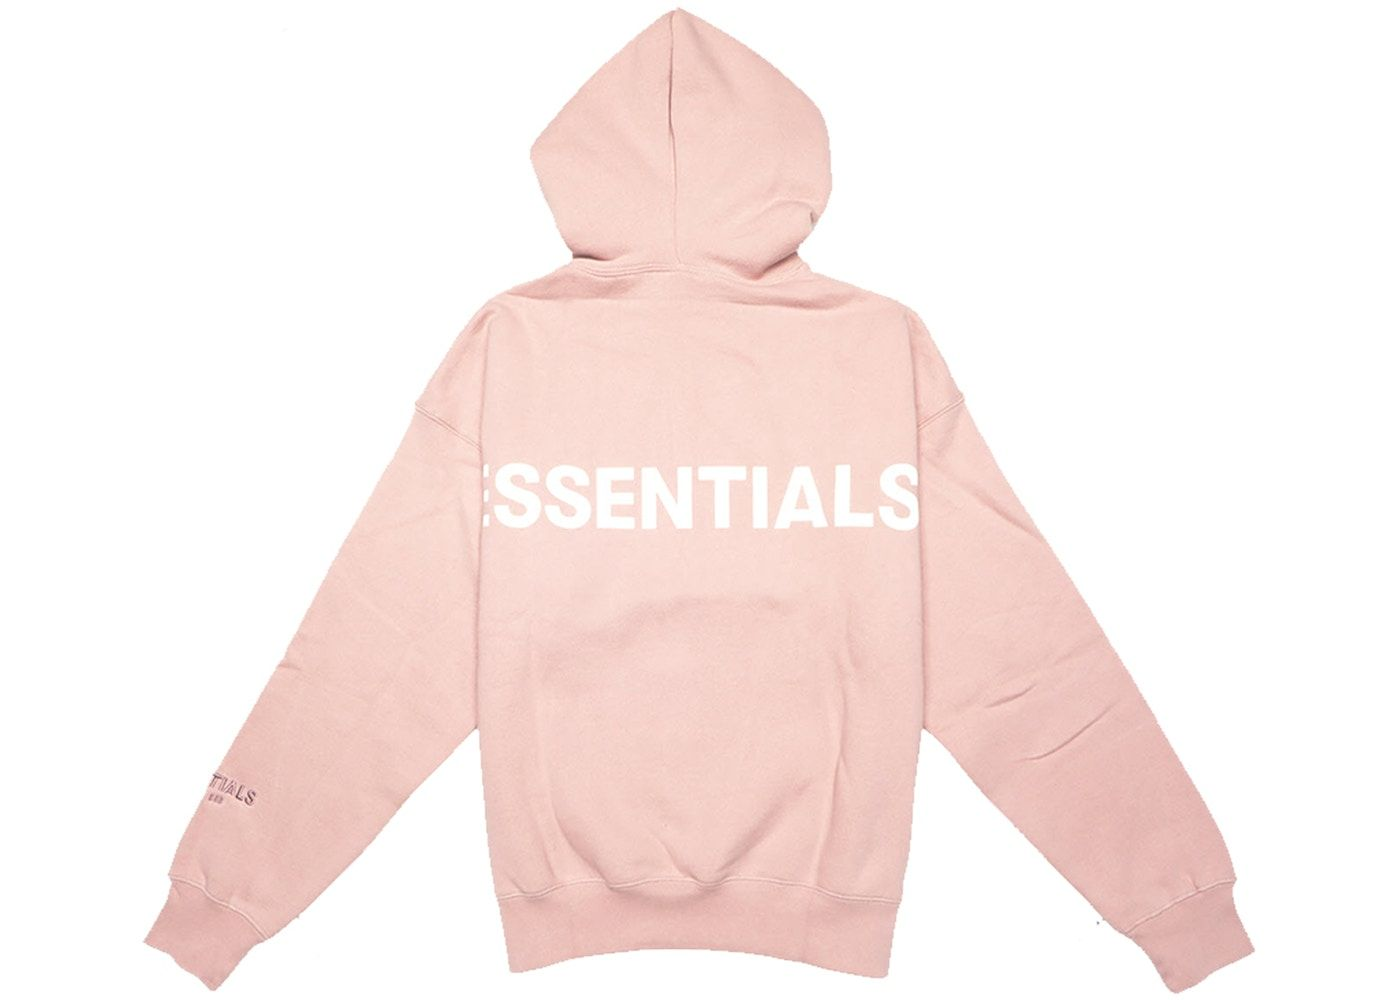 Fear Of God Essentials Pink 3m Logo Pullover Hoodie Blush In 2021 Hoodies Pullover Hoodie Pullover [ 1000 x 1400 Pixel ]